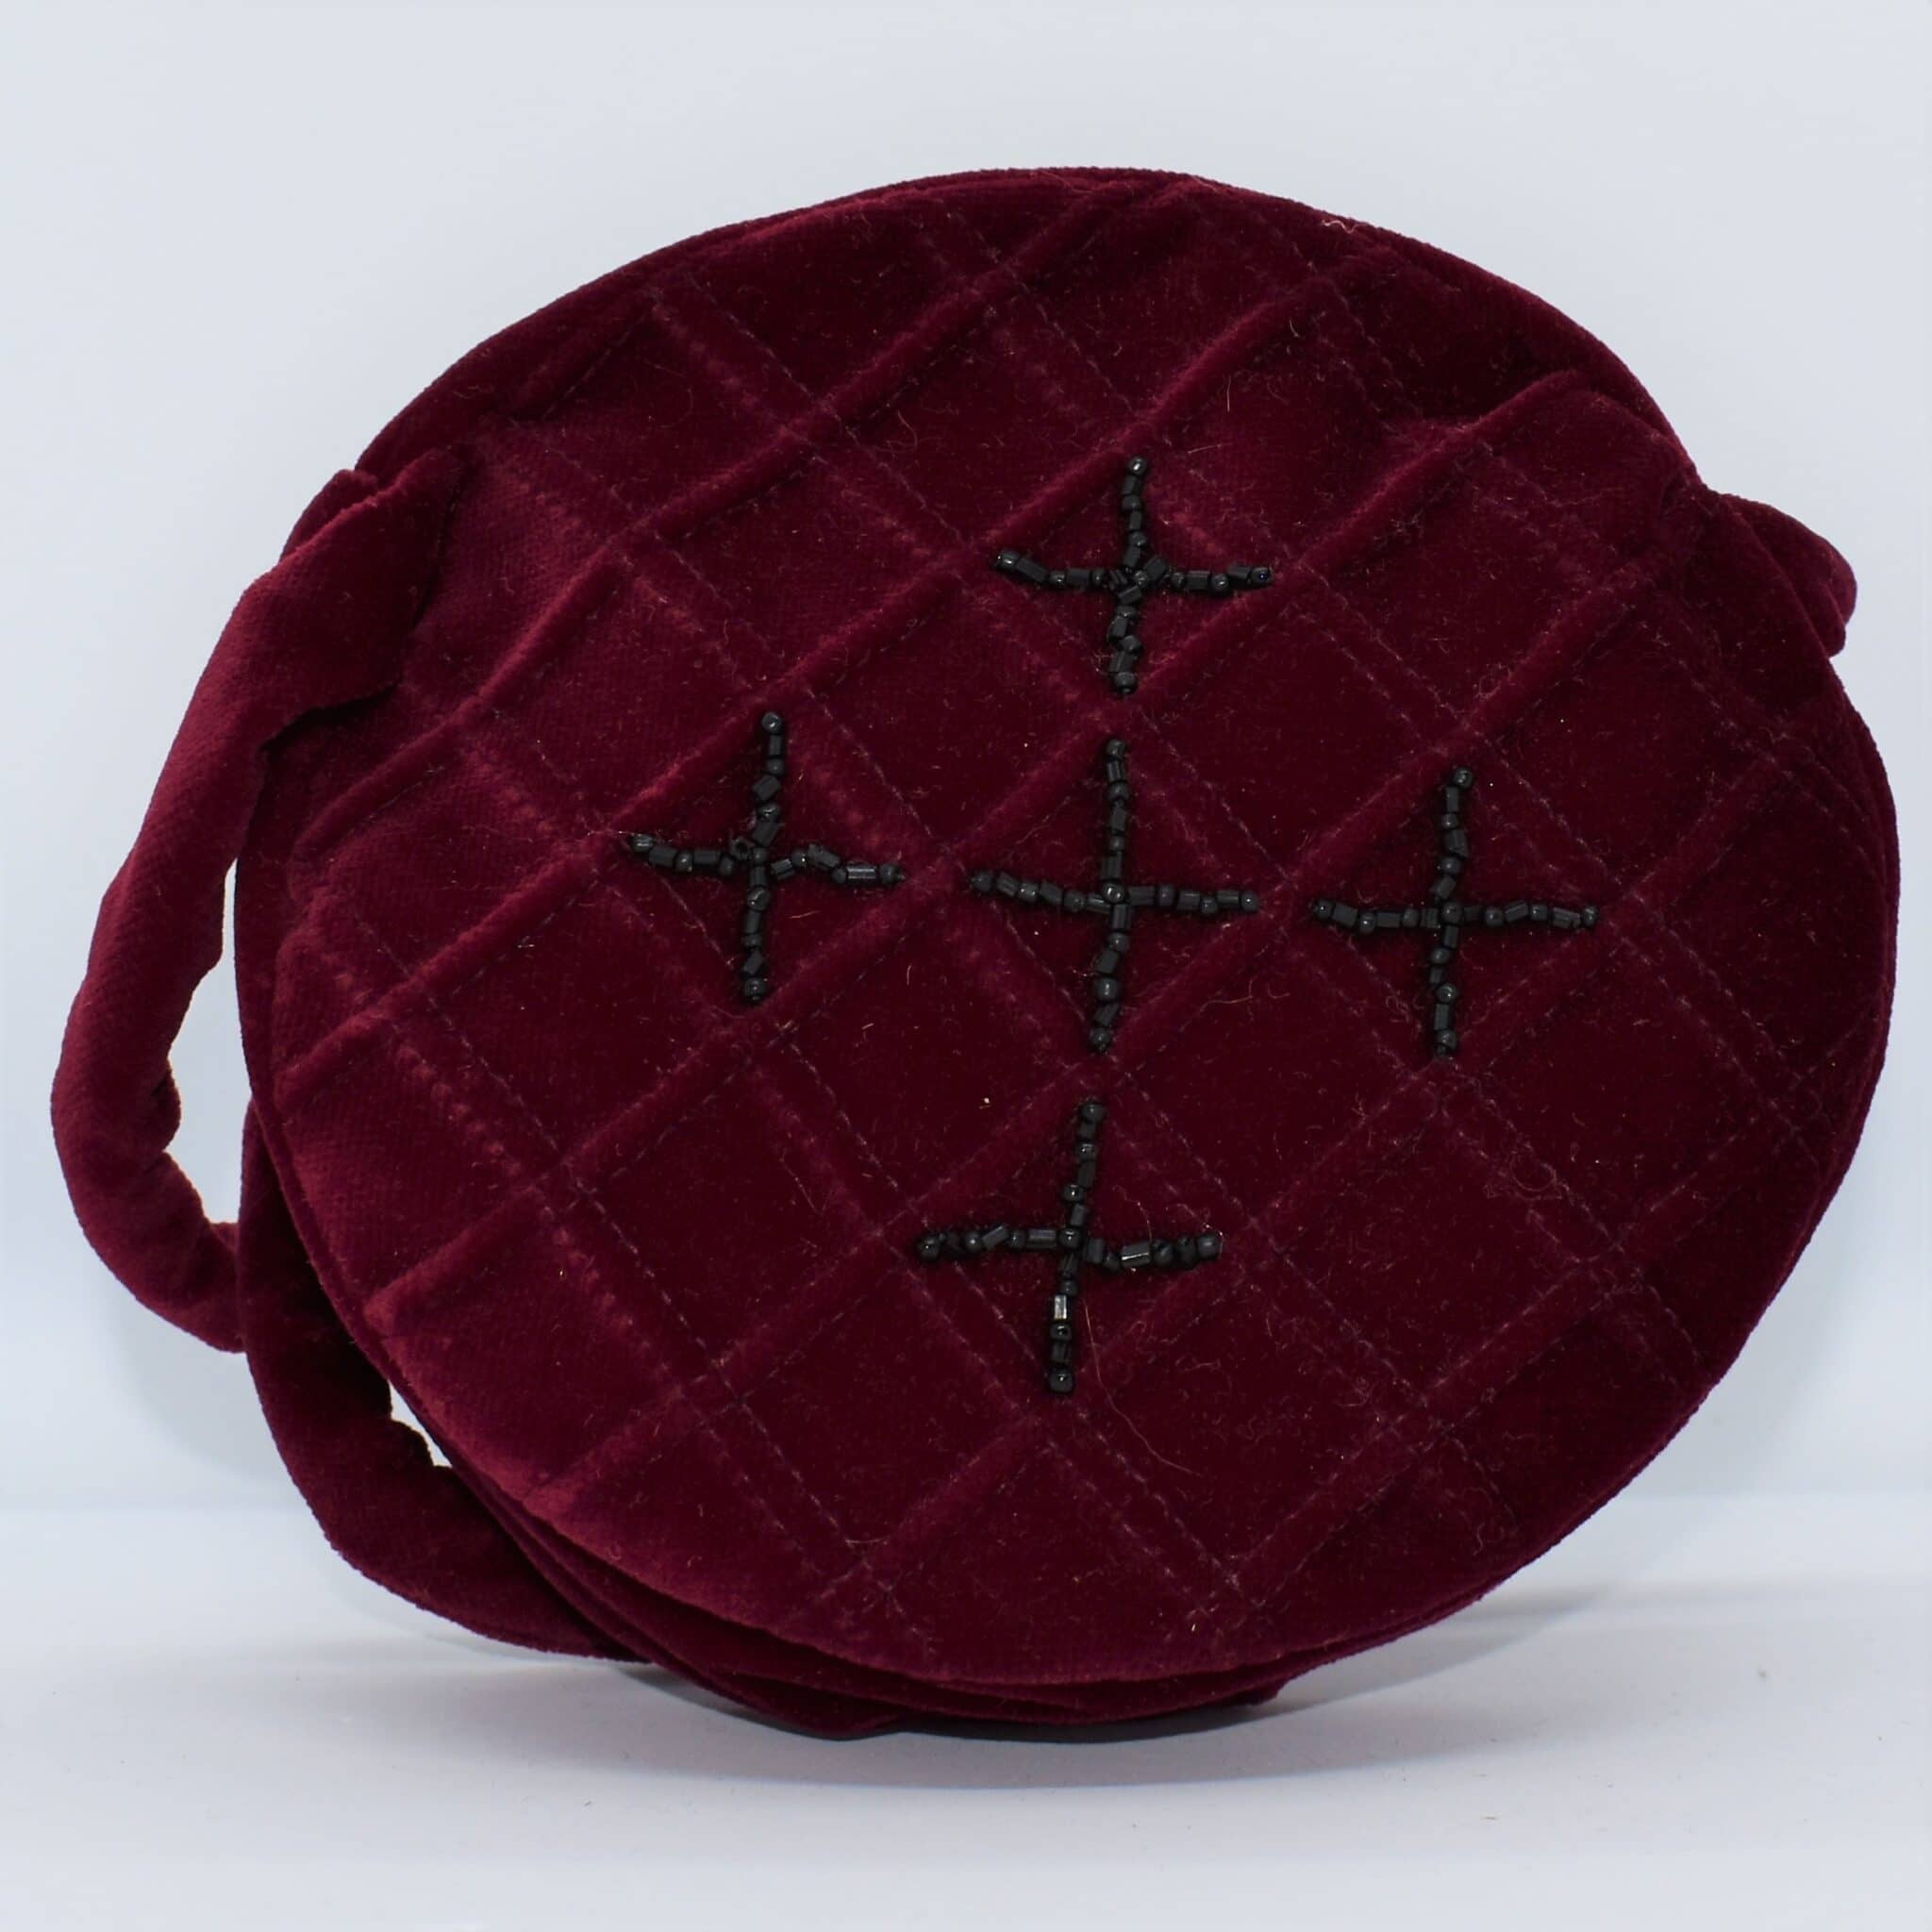 Beaded Maroon Velvet Handbag By Helen Macqueen Textile Art